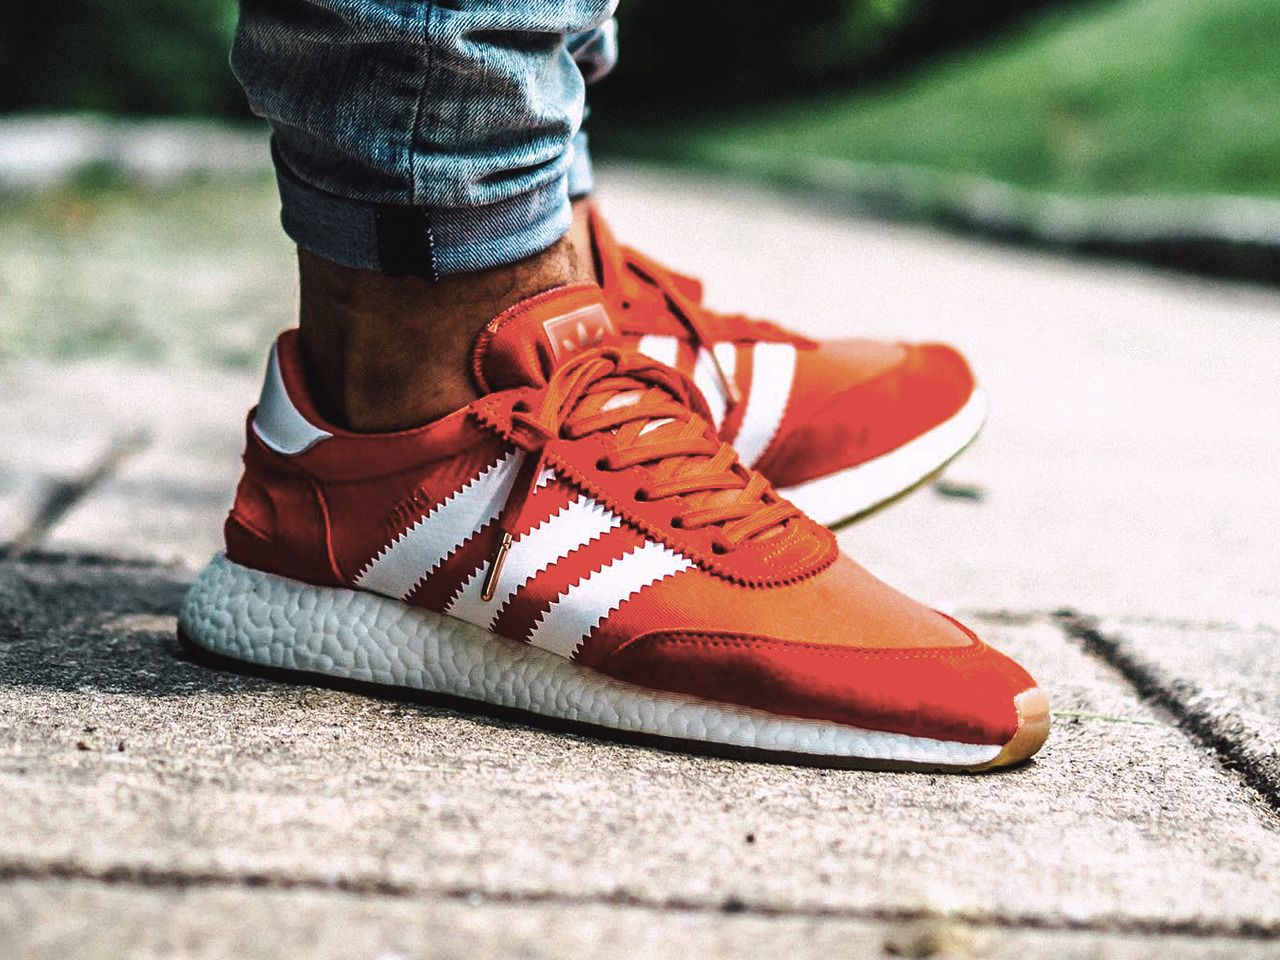 best service 1a59e 3d703 Adidas Iniki Runner Boost - Red - 2017 (by indy.sneakers)